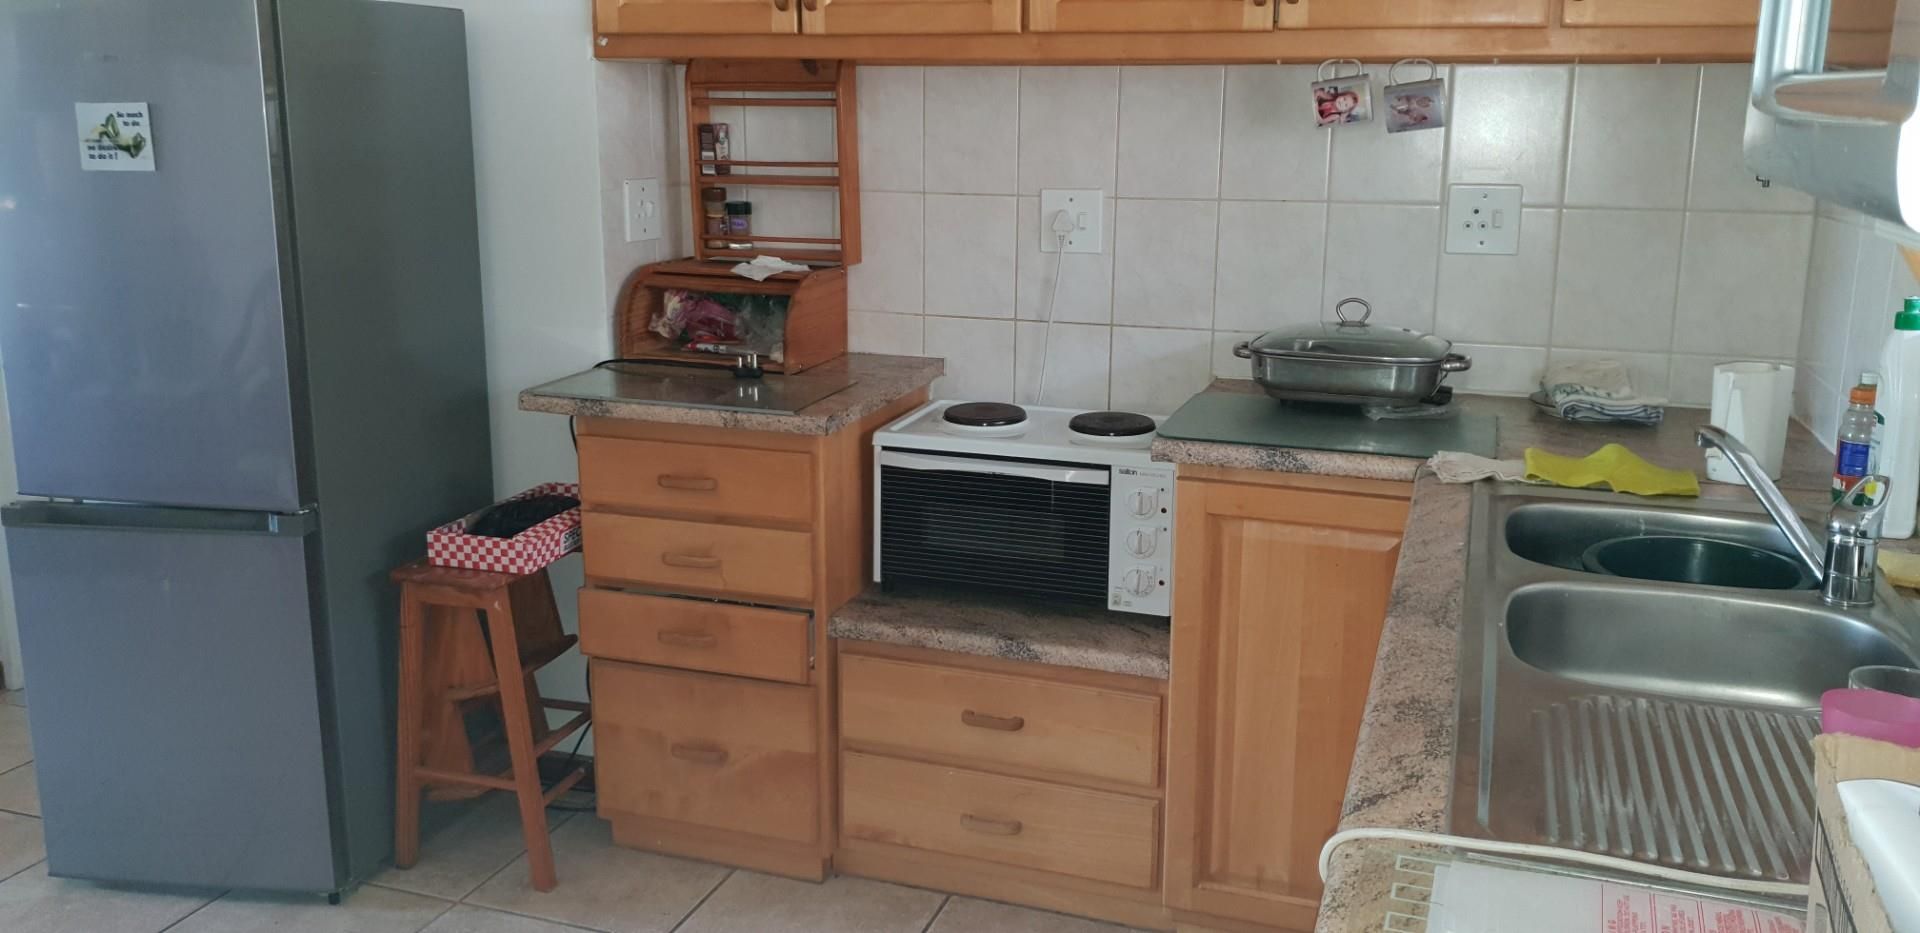 1 Bedroom Apartment / Flat For Sale in West Acres